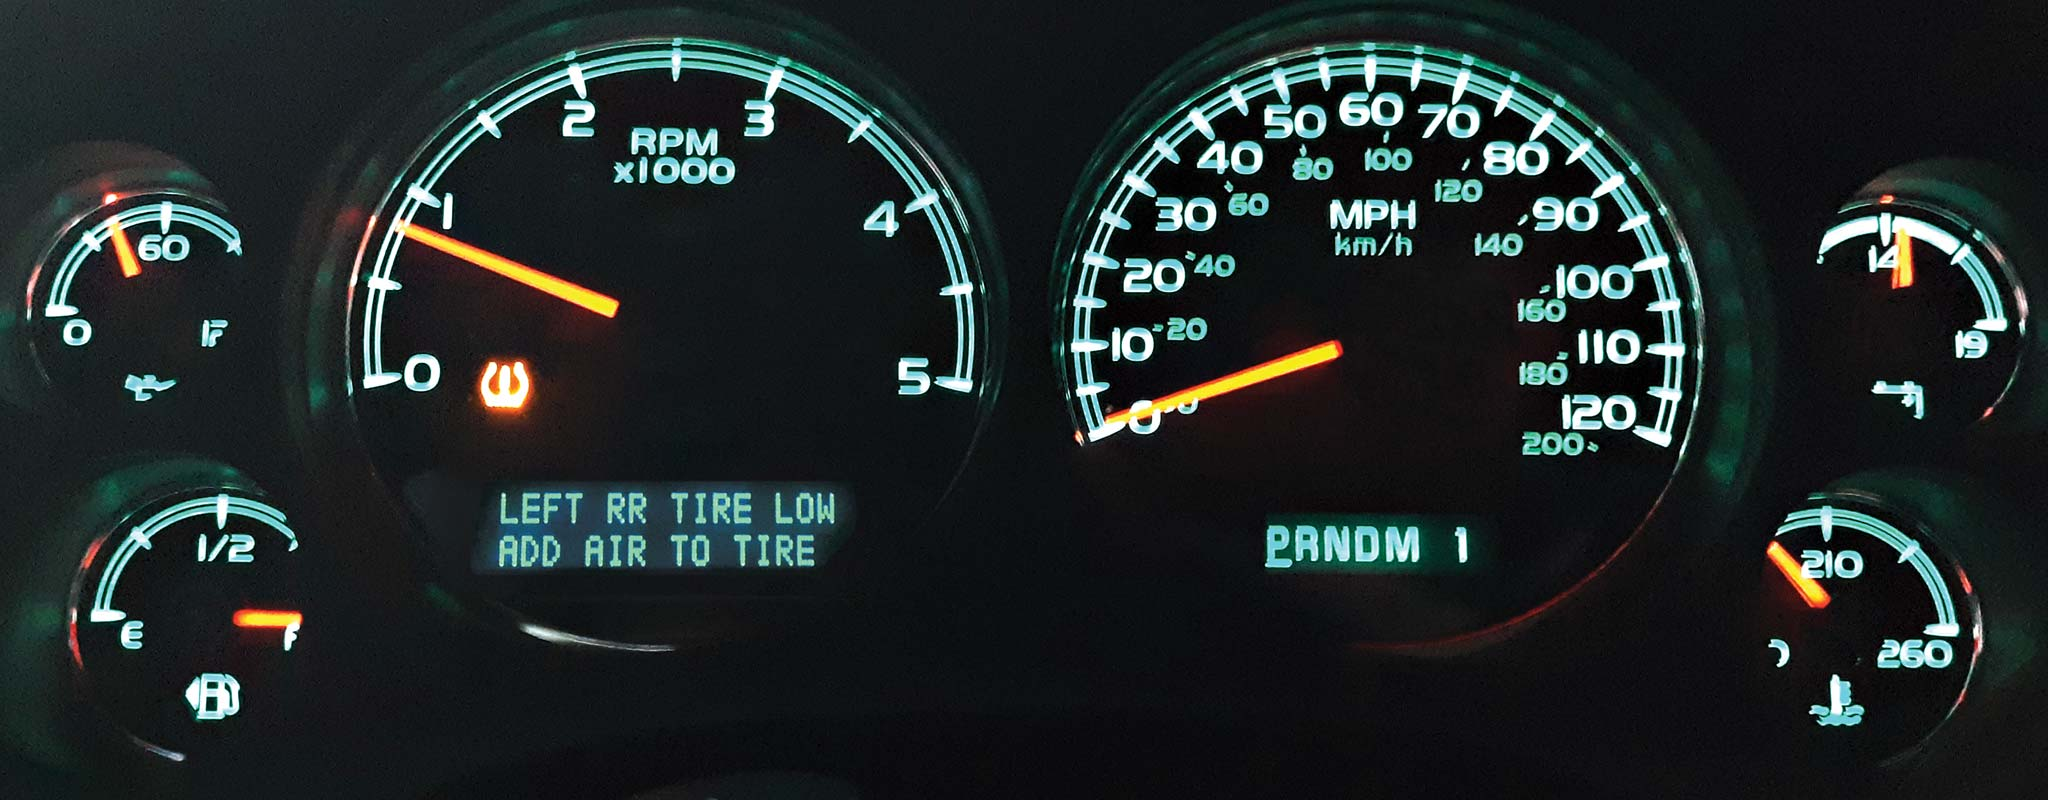 An illuminated dashboard with TPMS lights.